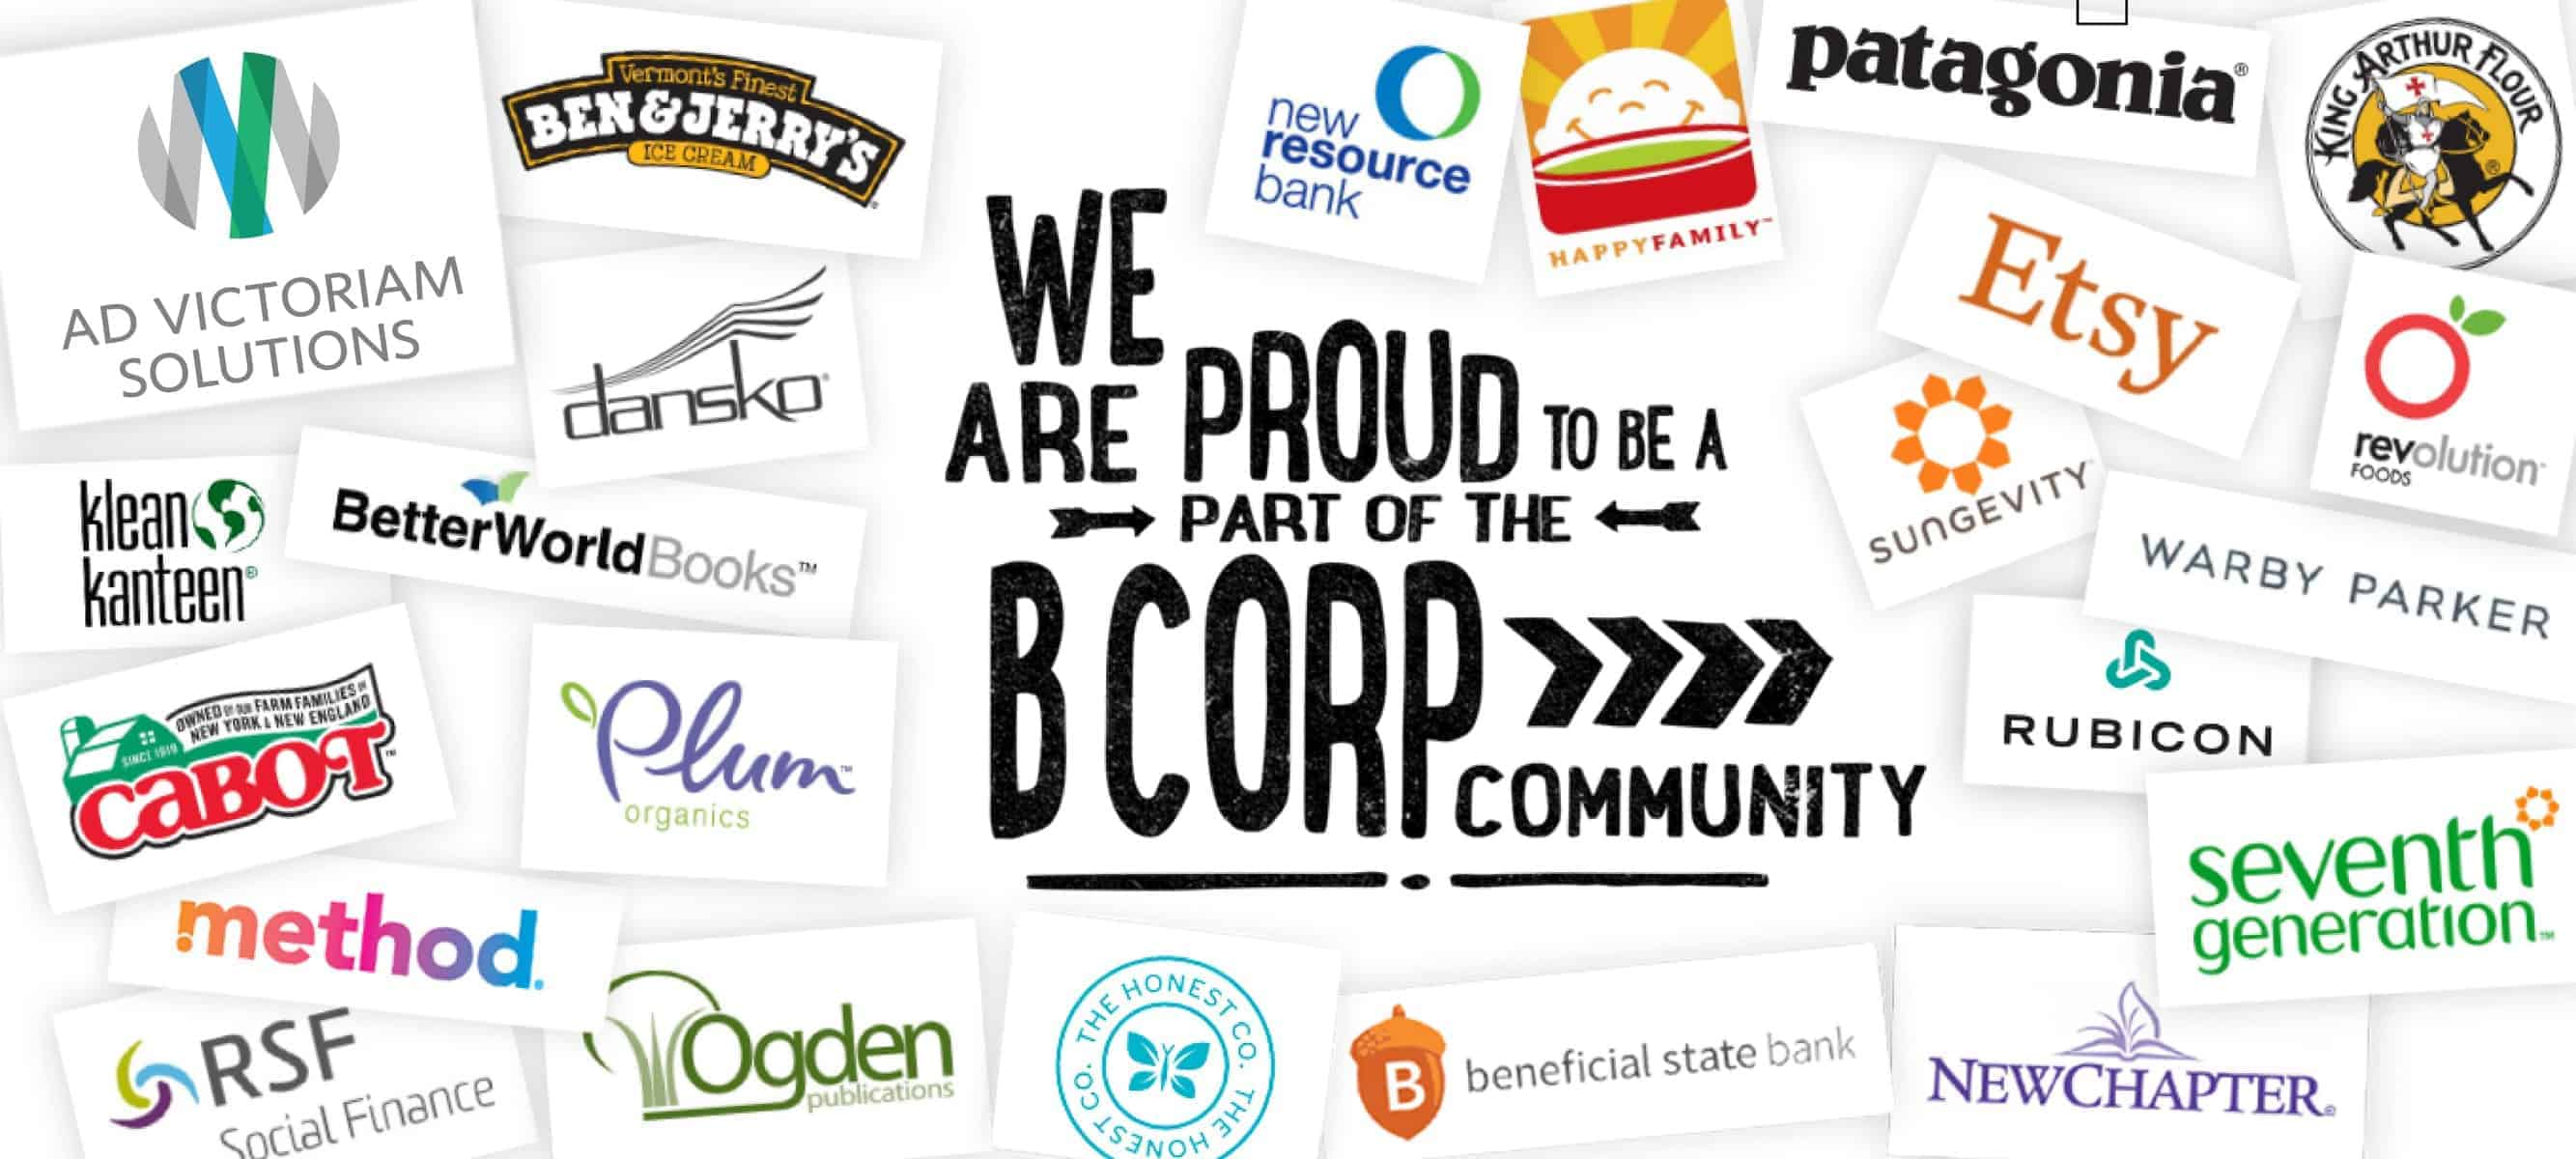 BCorp Webpage Header2-min